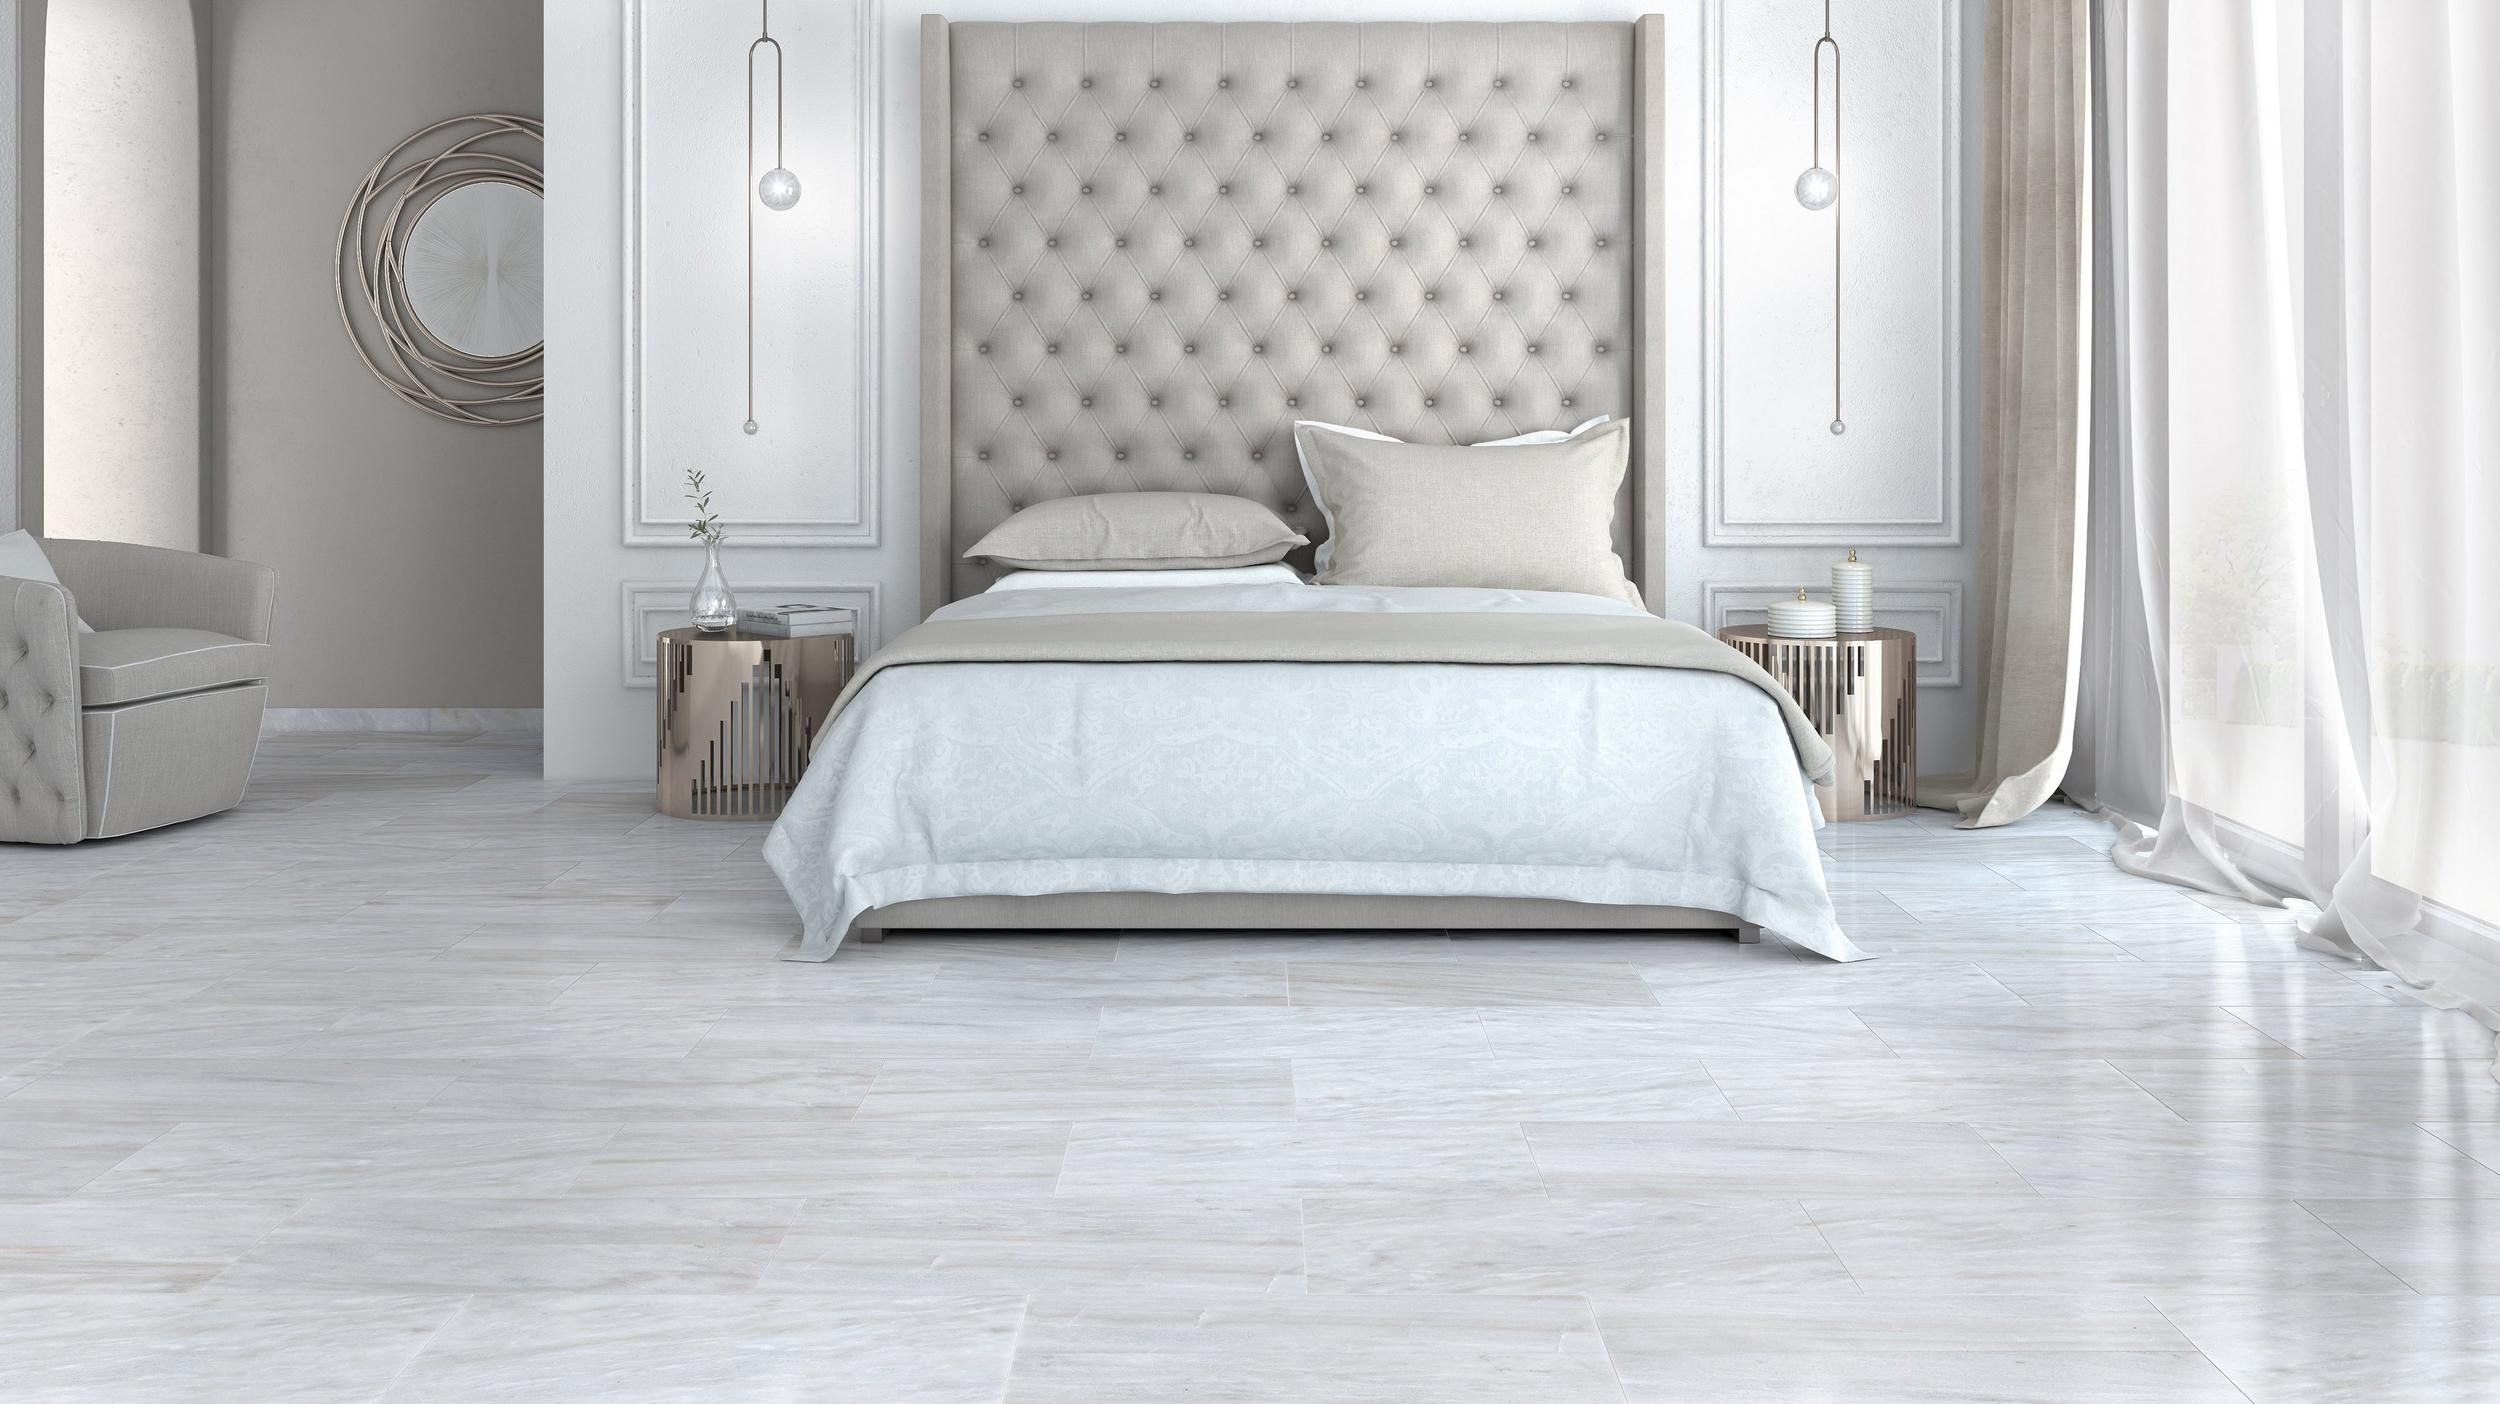 Bedroom Gallery Floor Decor Tile Bedroom Marble Bedroom Bedroom Flooring